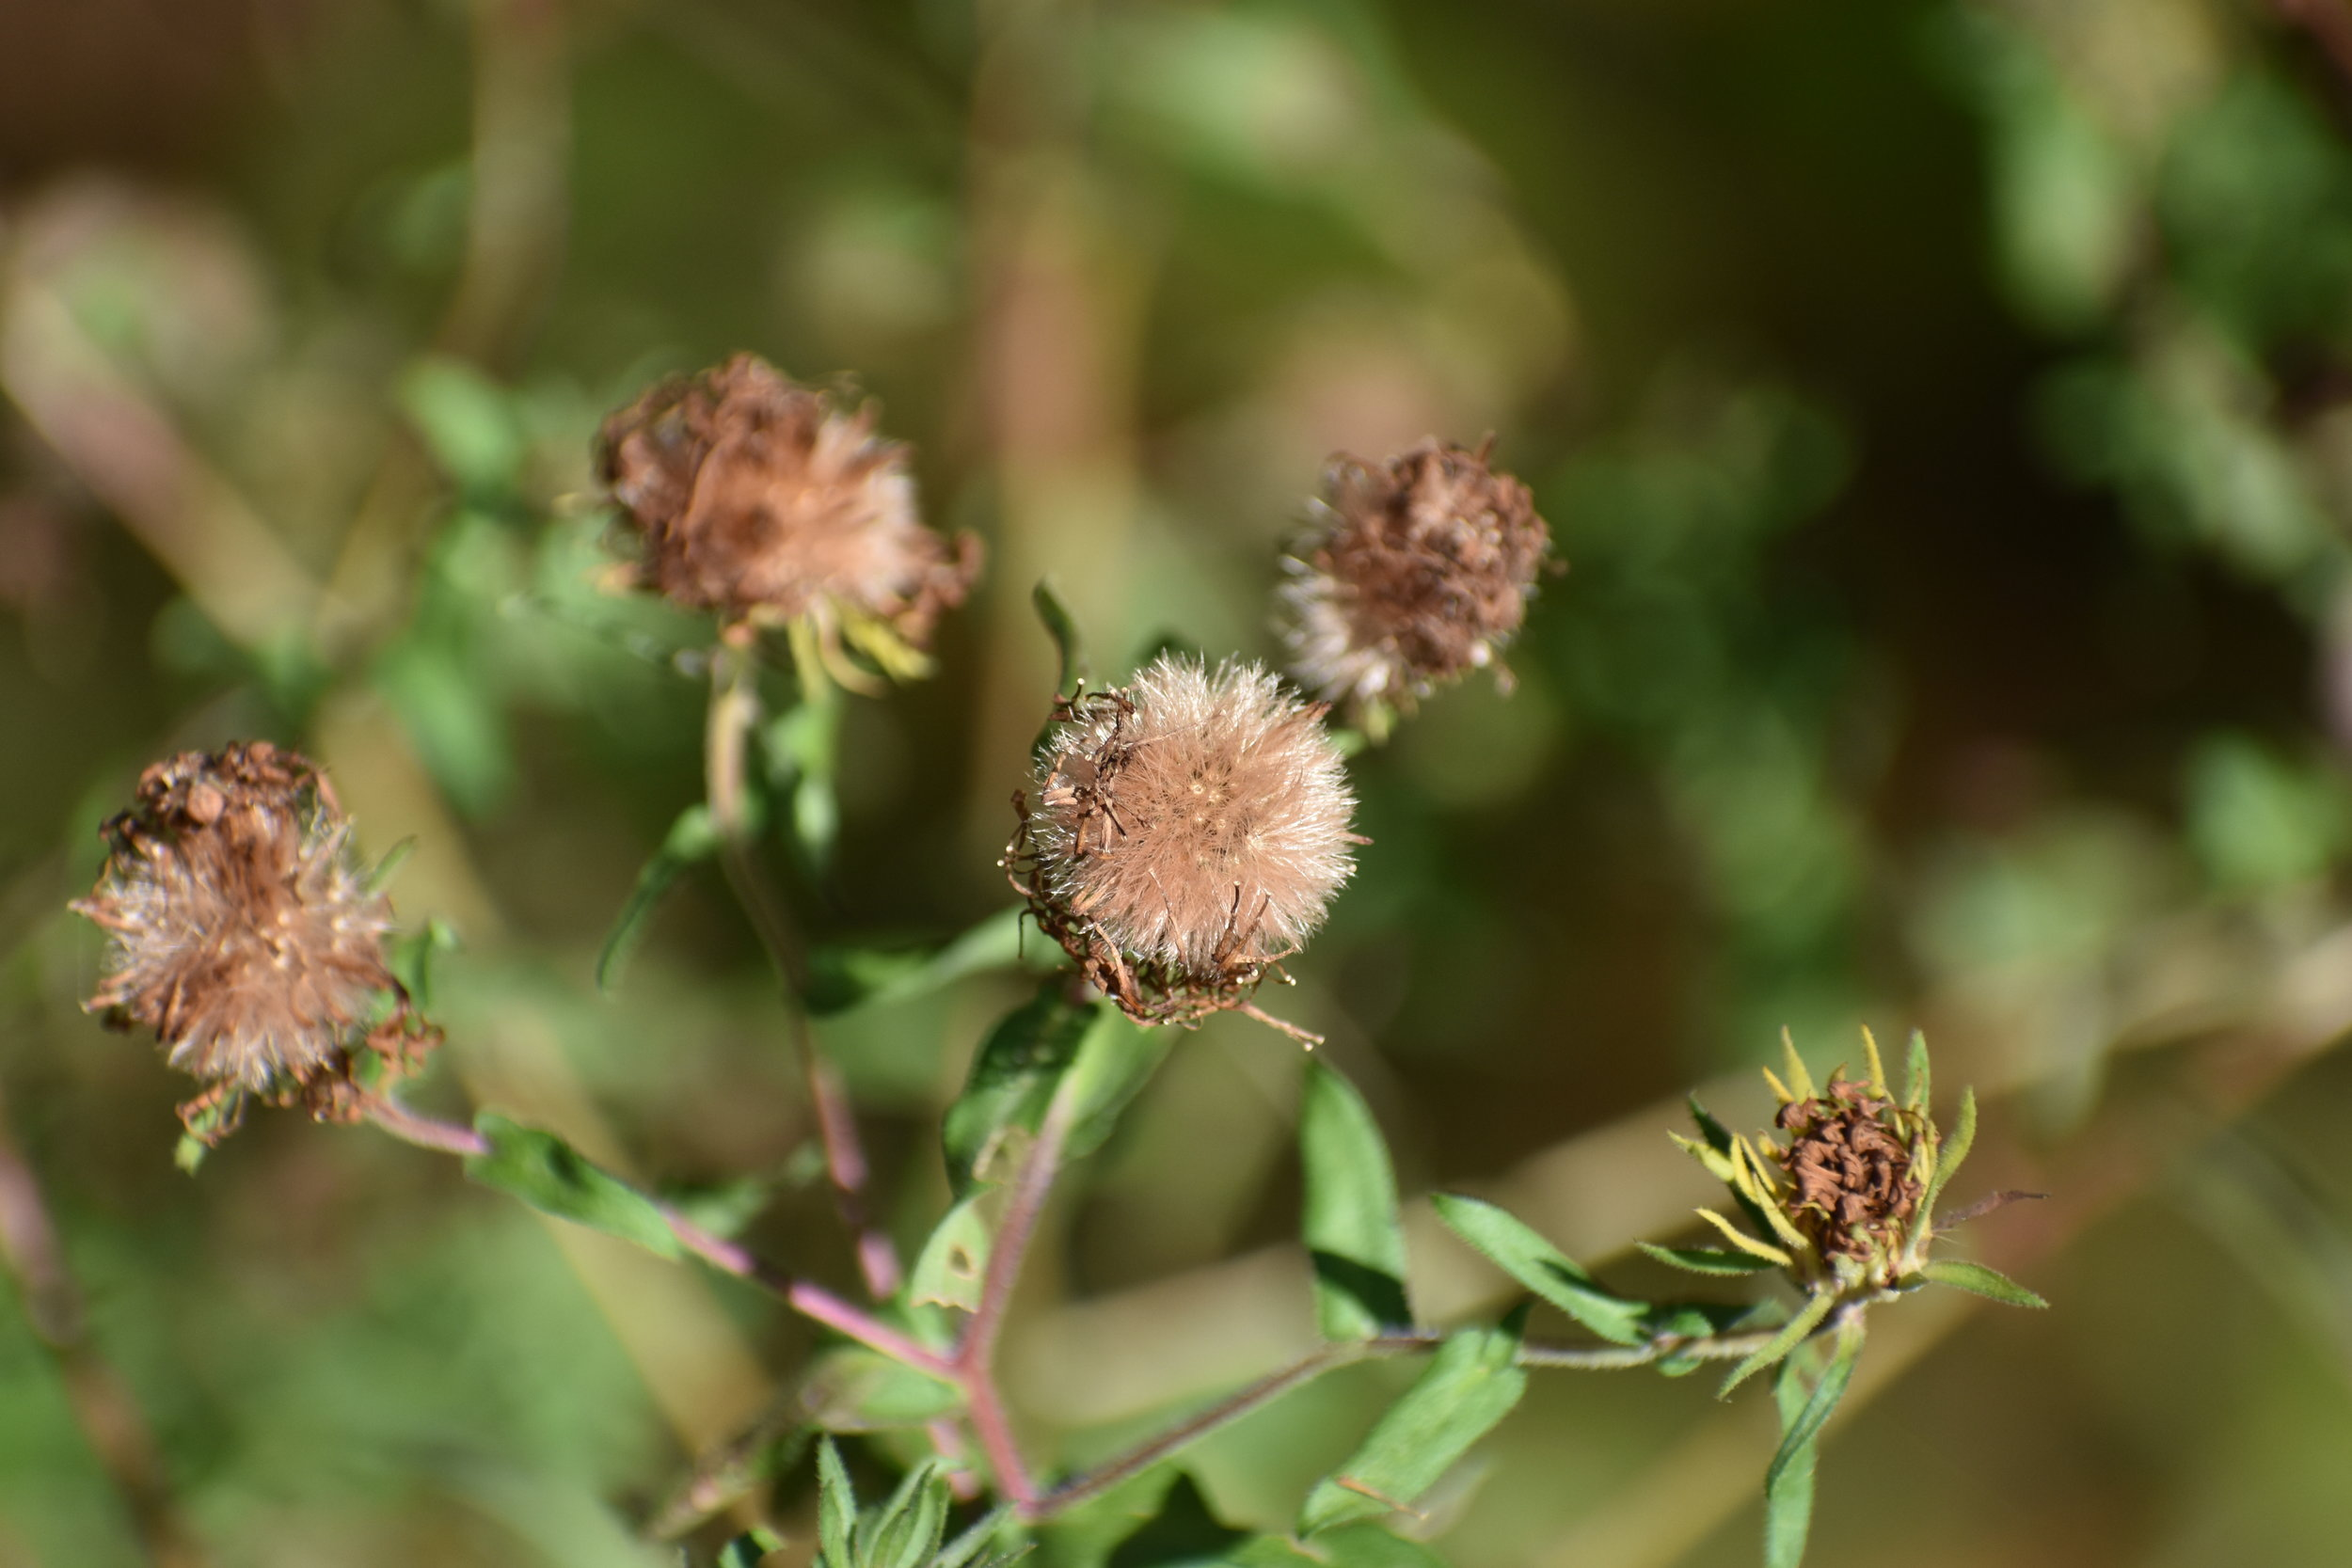 New England Aster - Seed Head